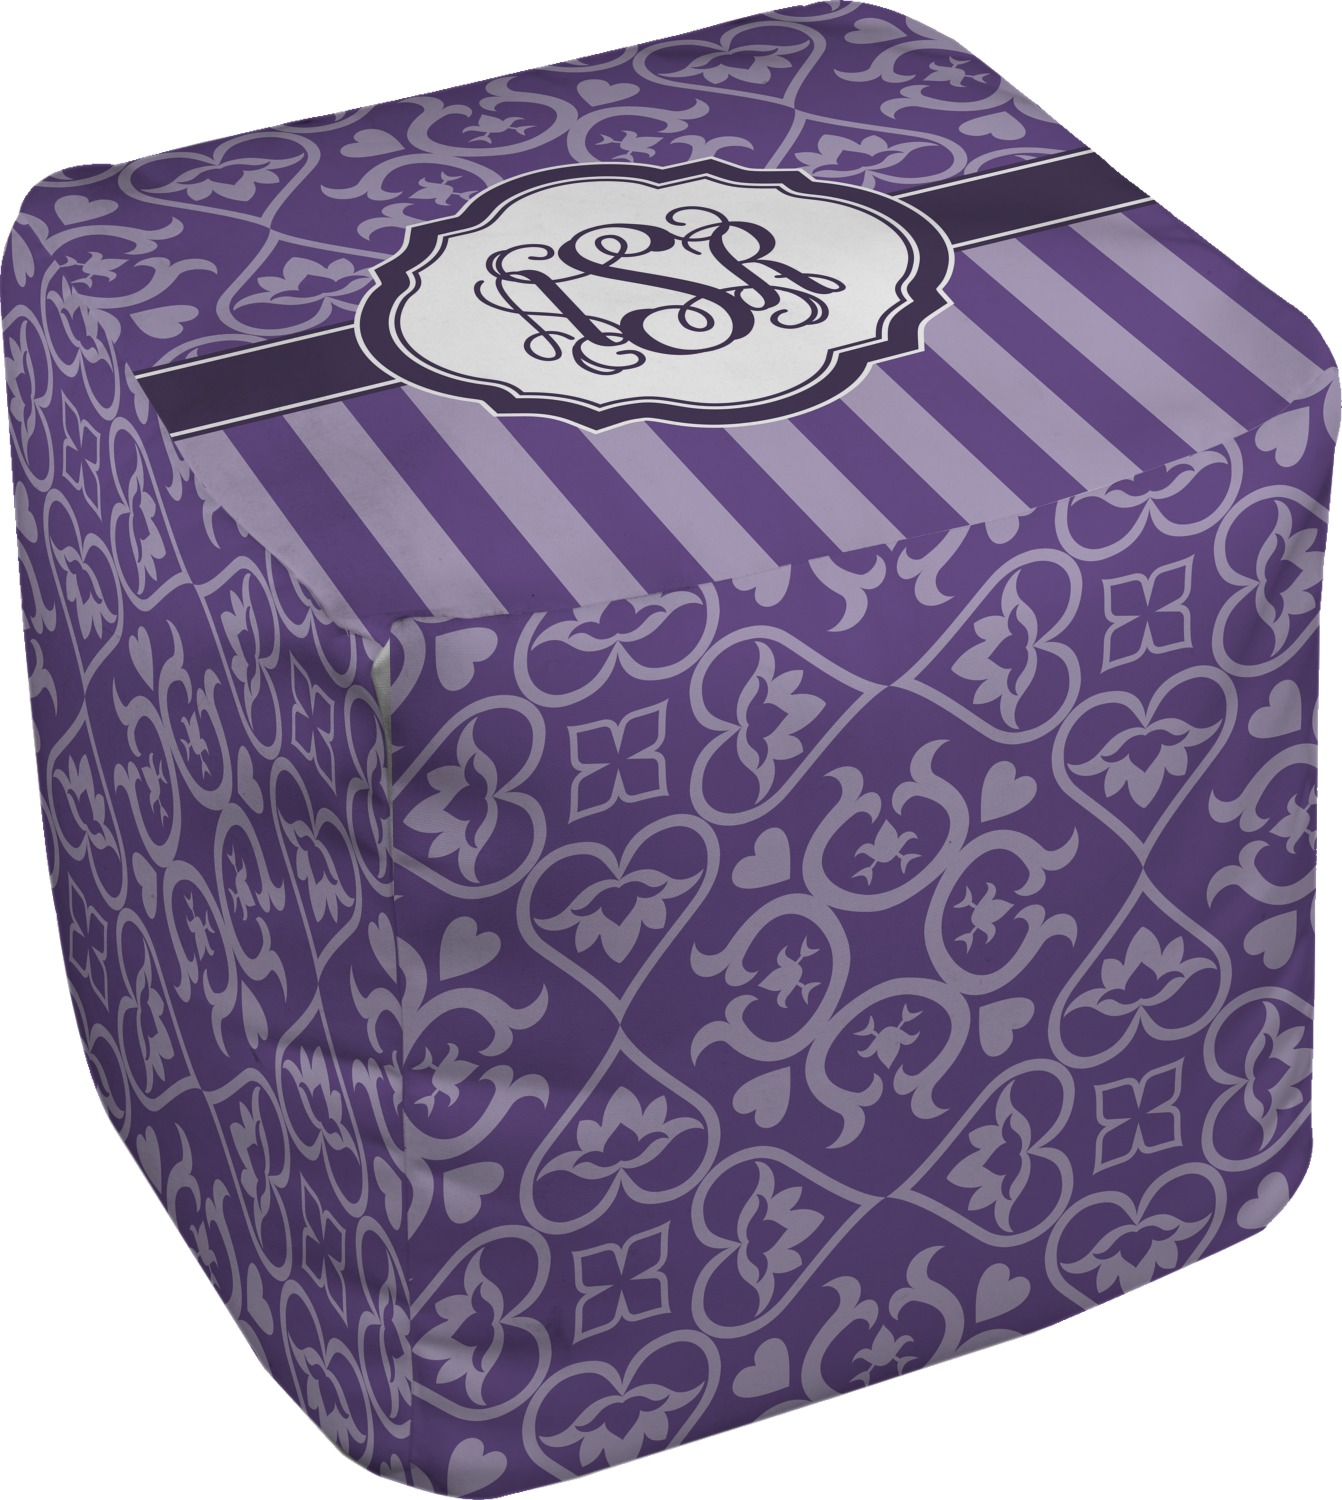 lotus flower cube pouf ottoman 13 personalized you. Black Bedroom Furniture Sets. Home Design Ideas